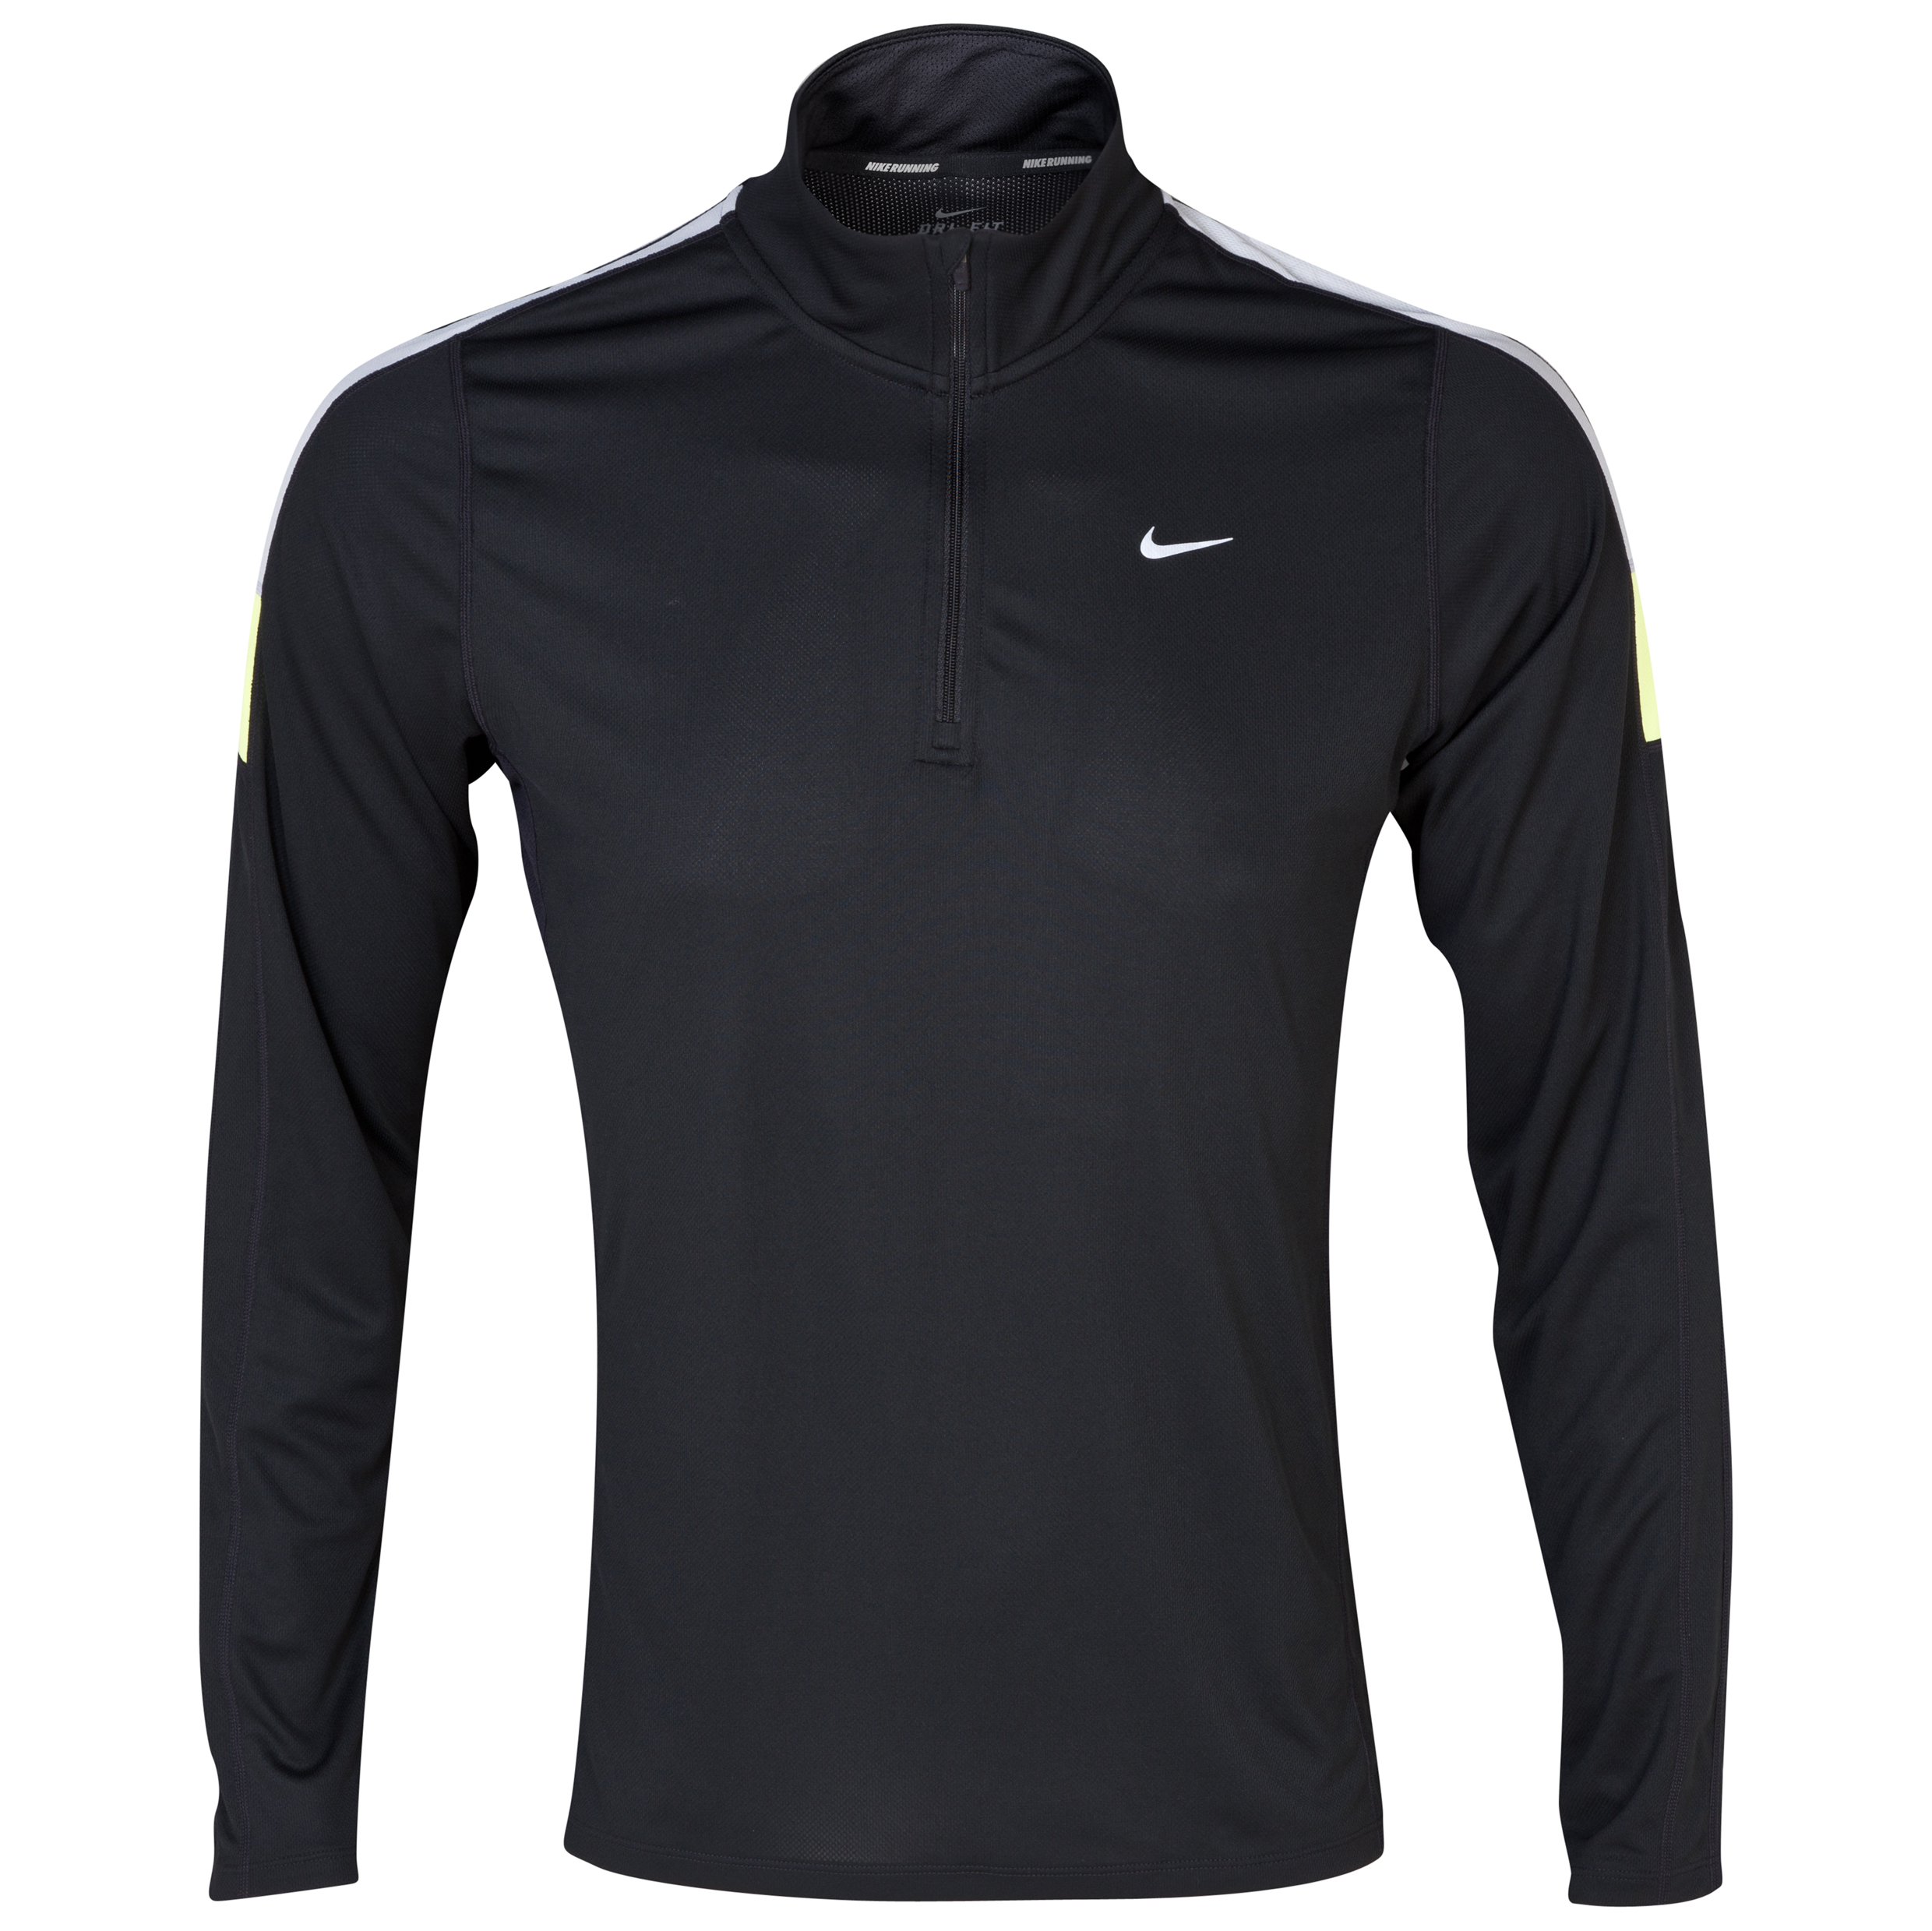 Nike Racer Flash LS 1/2 Zip Top Black